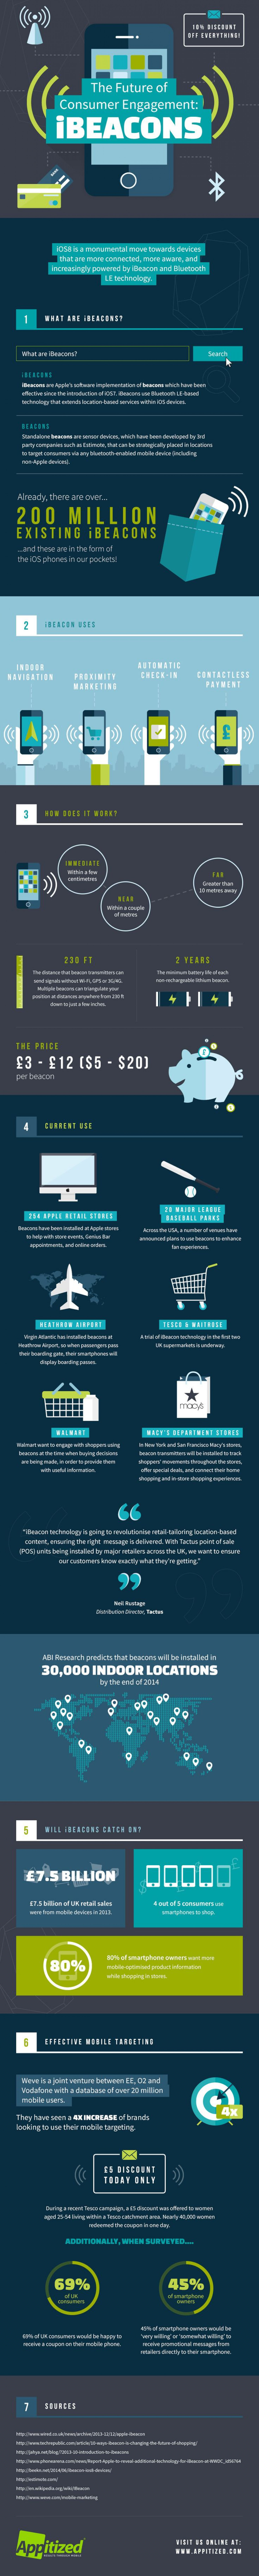 IBEACONS : The Future Of Consumer Engagement Infographic